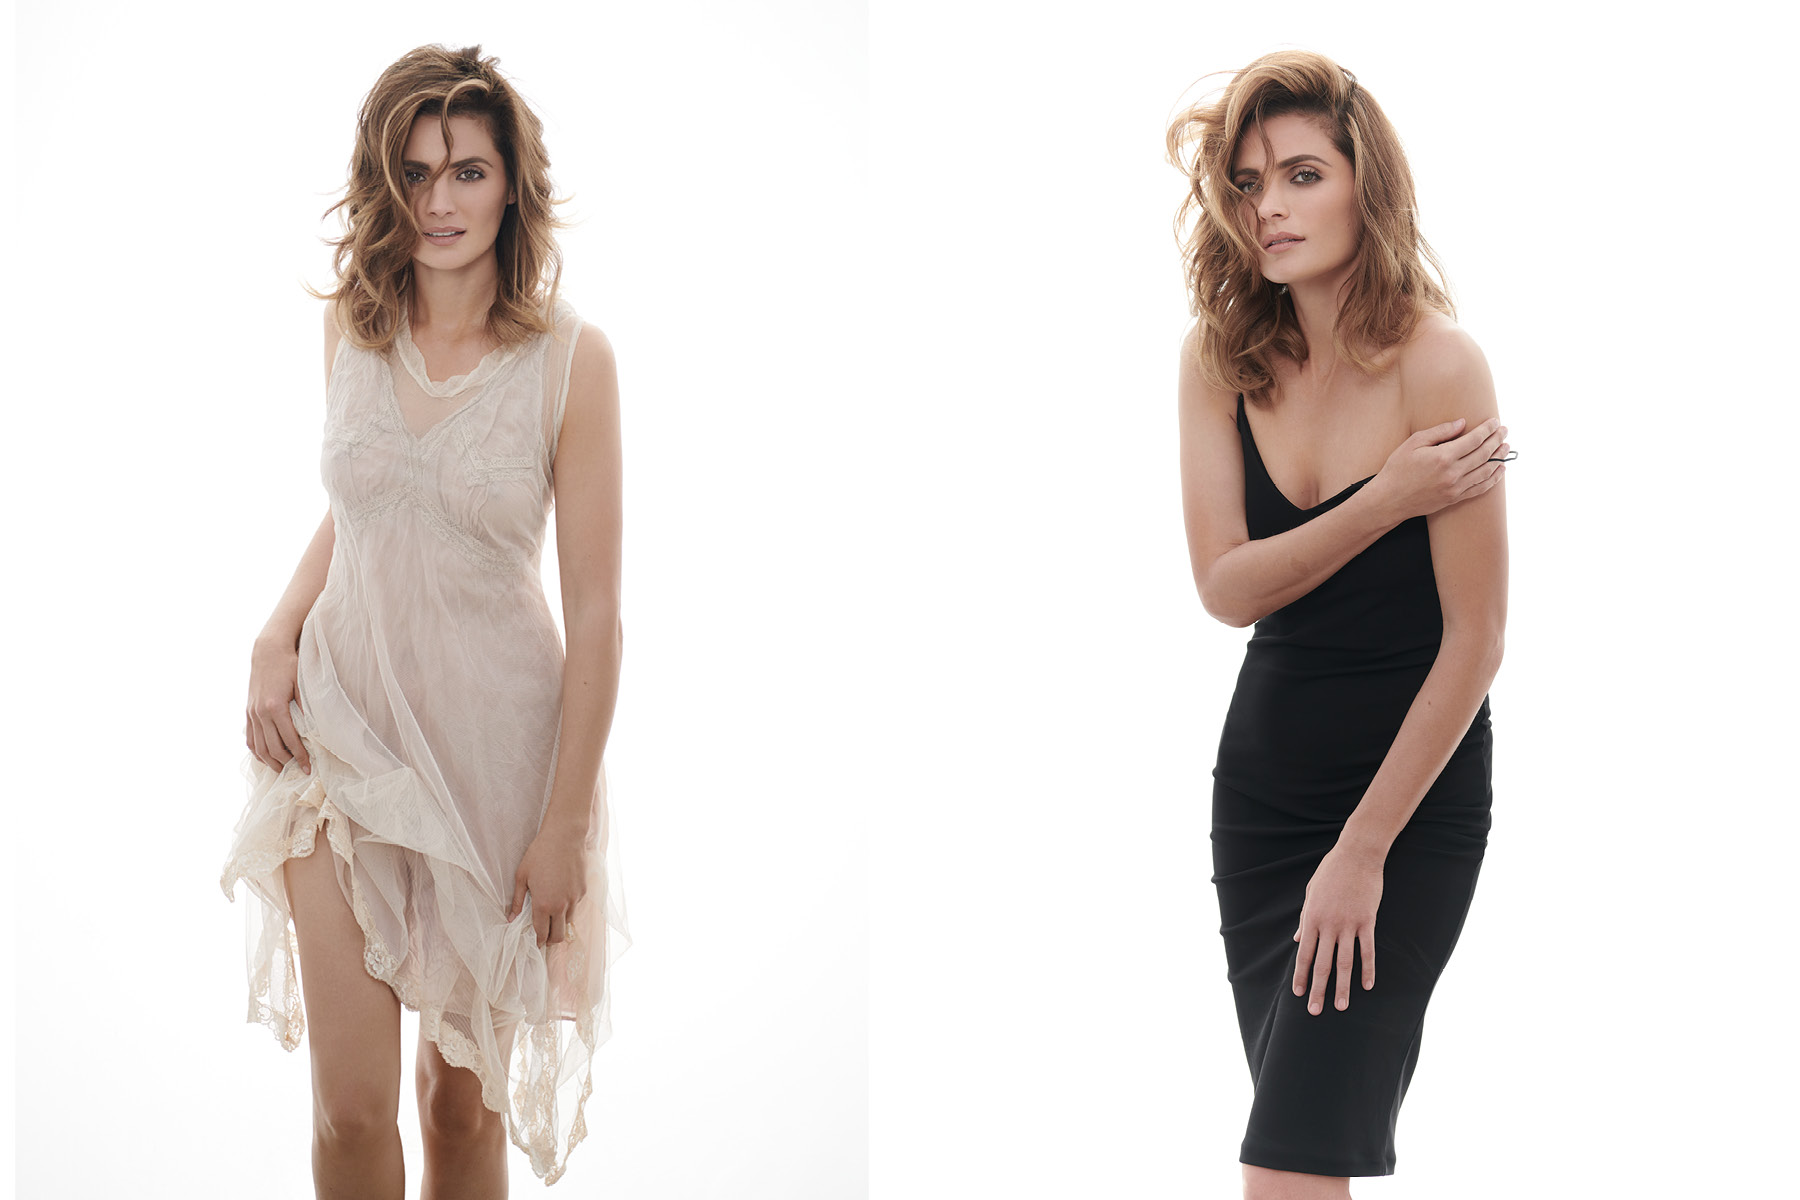 Spirit-&-Flesh-Magazine_STANA-KATIC_by_BRIAN-BOWEN-SMITH_2